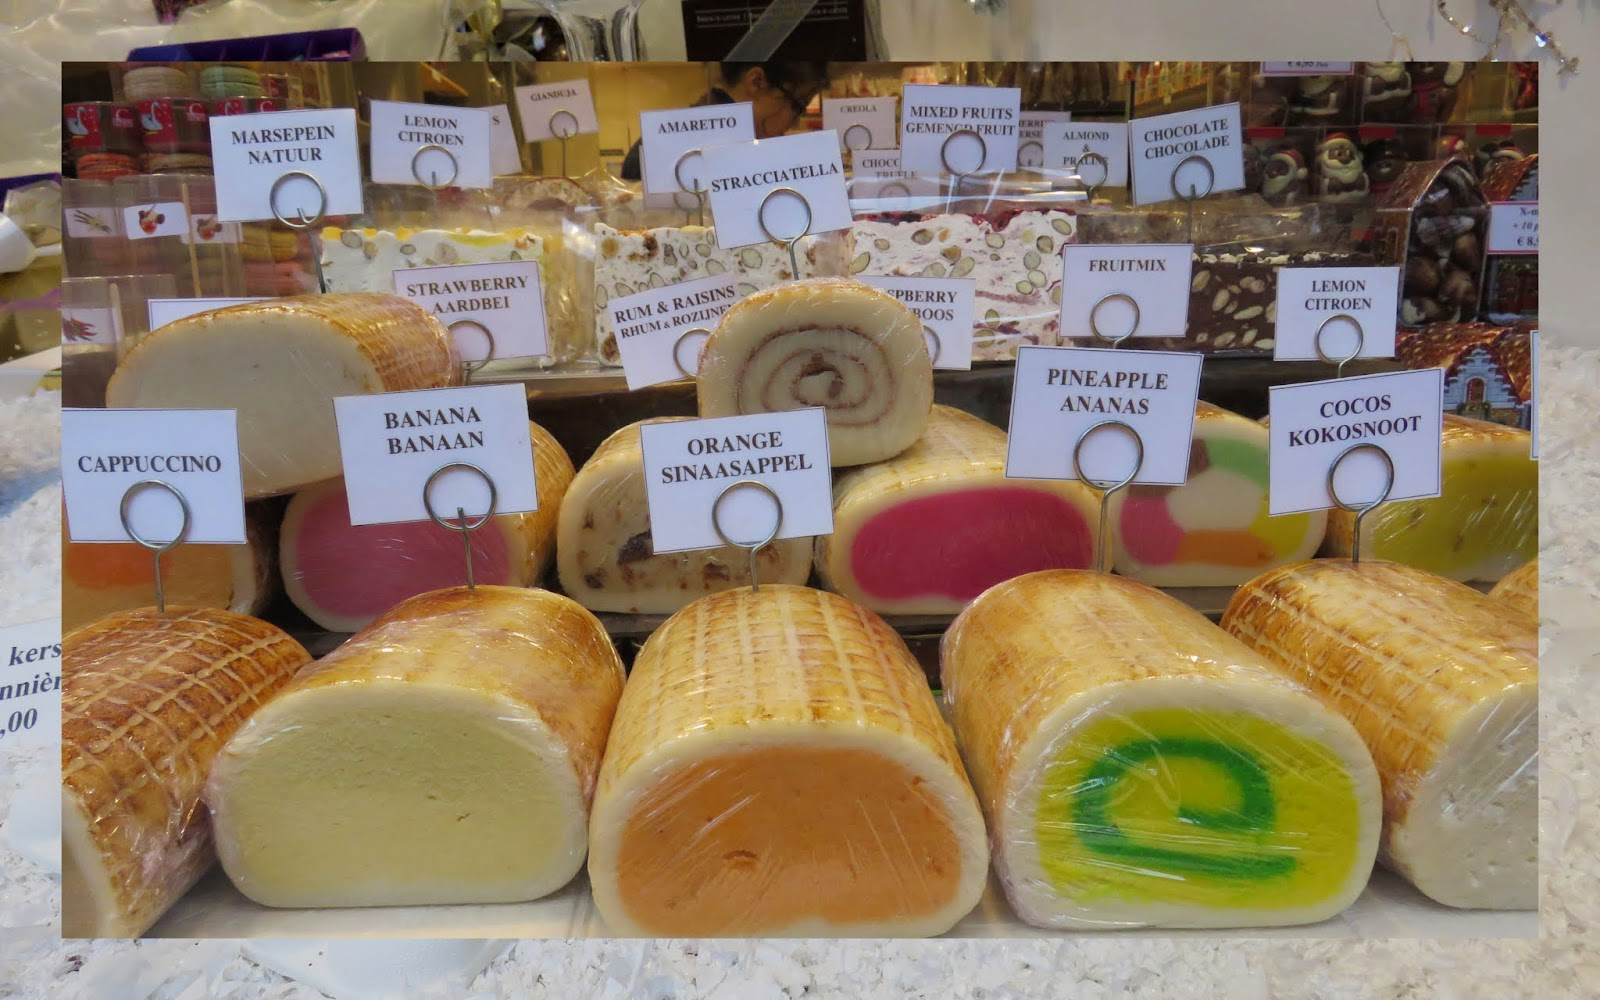 15 Reasons to Visit Bruges for Christmas: Marzipan yule logs